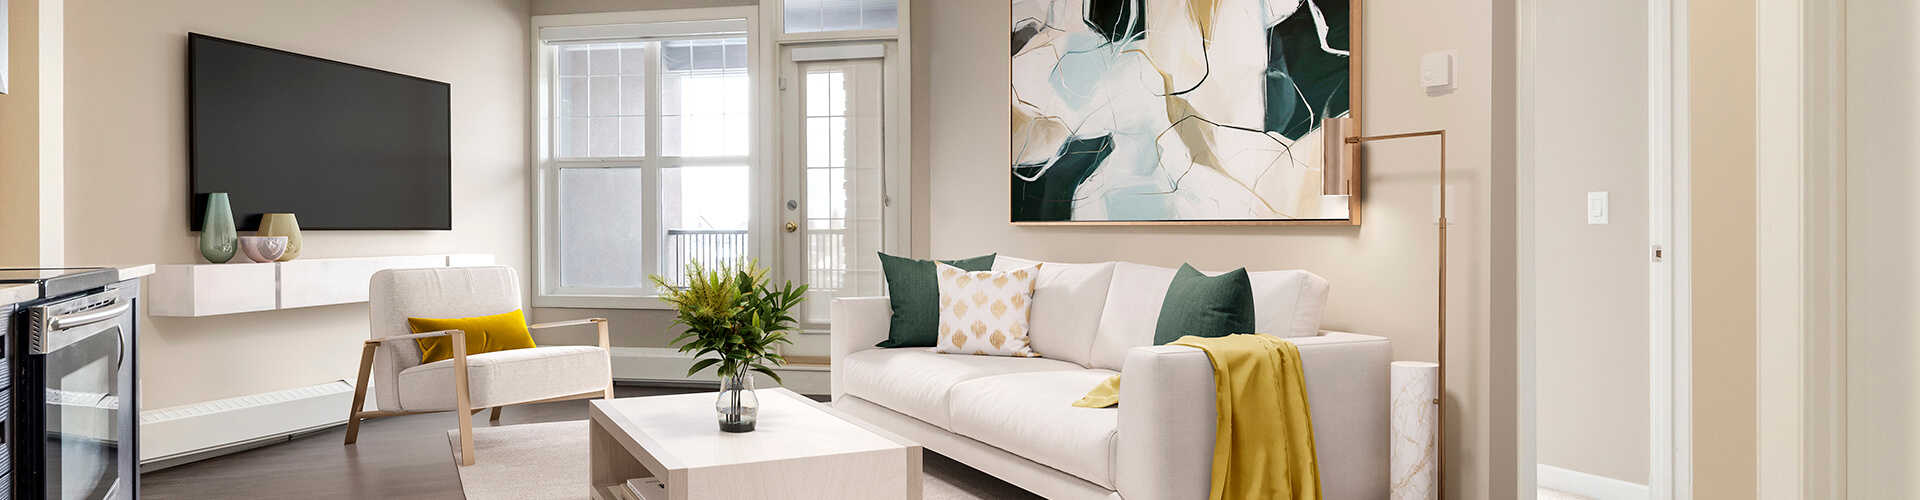 Modern living room at Laurier Apartments in Calgary. Rent with Minto Apartments.